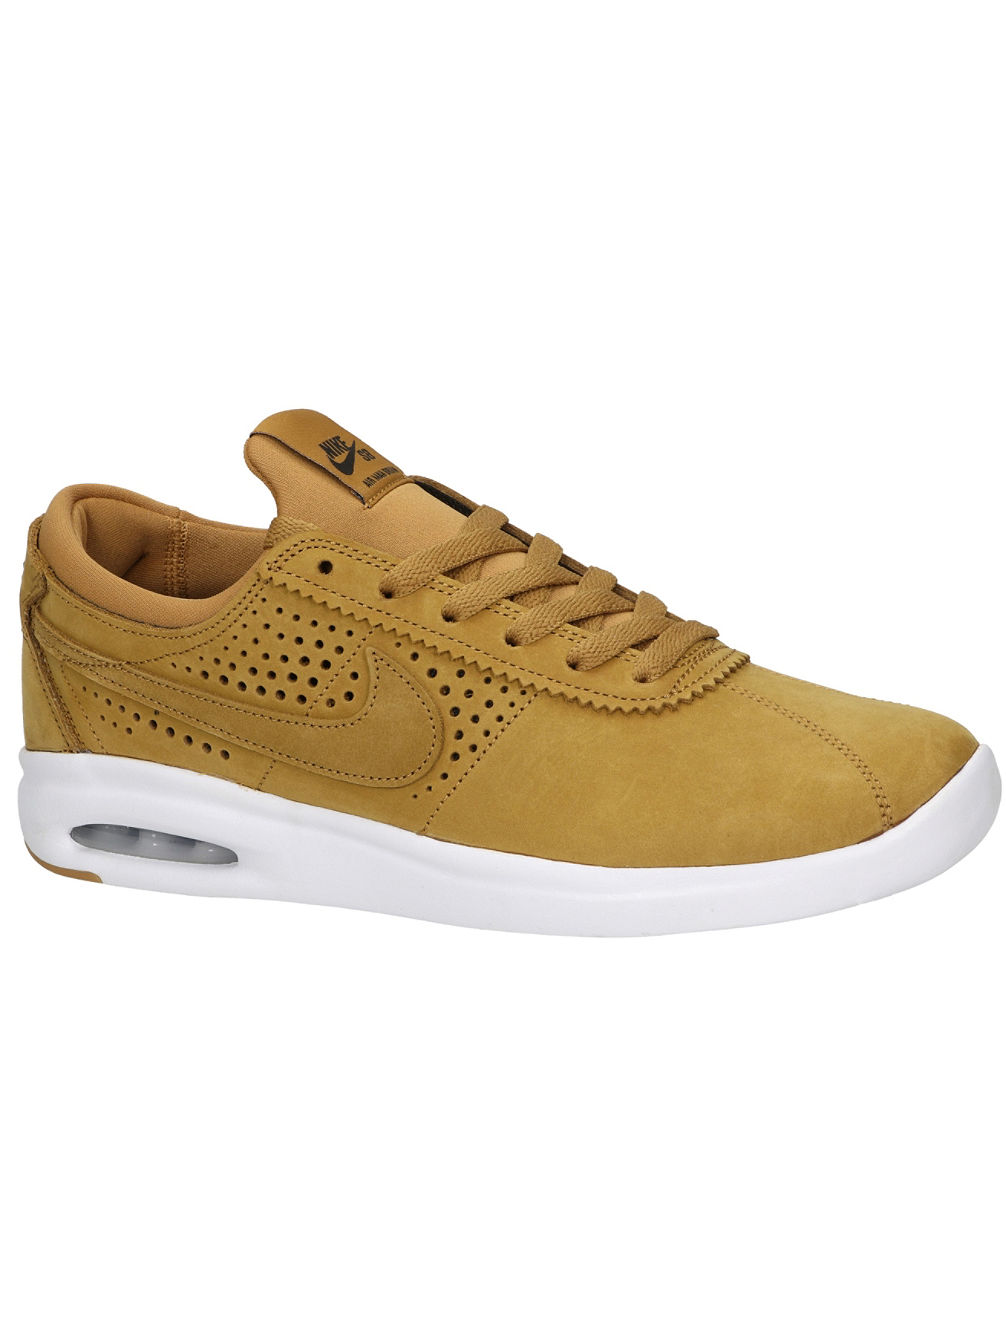 Air Max Bruin Vapor Leather Sneakers